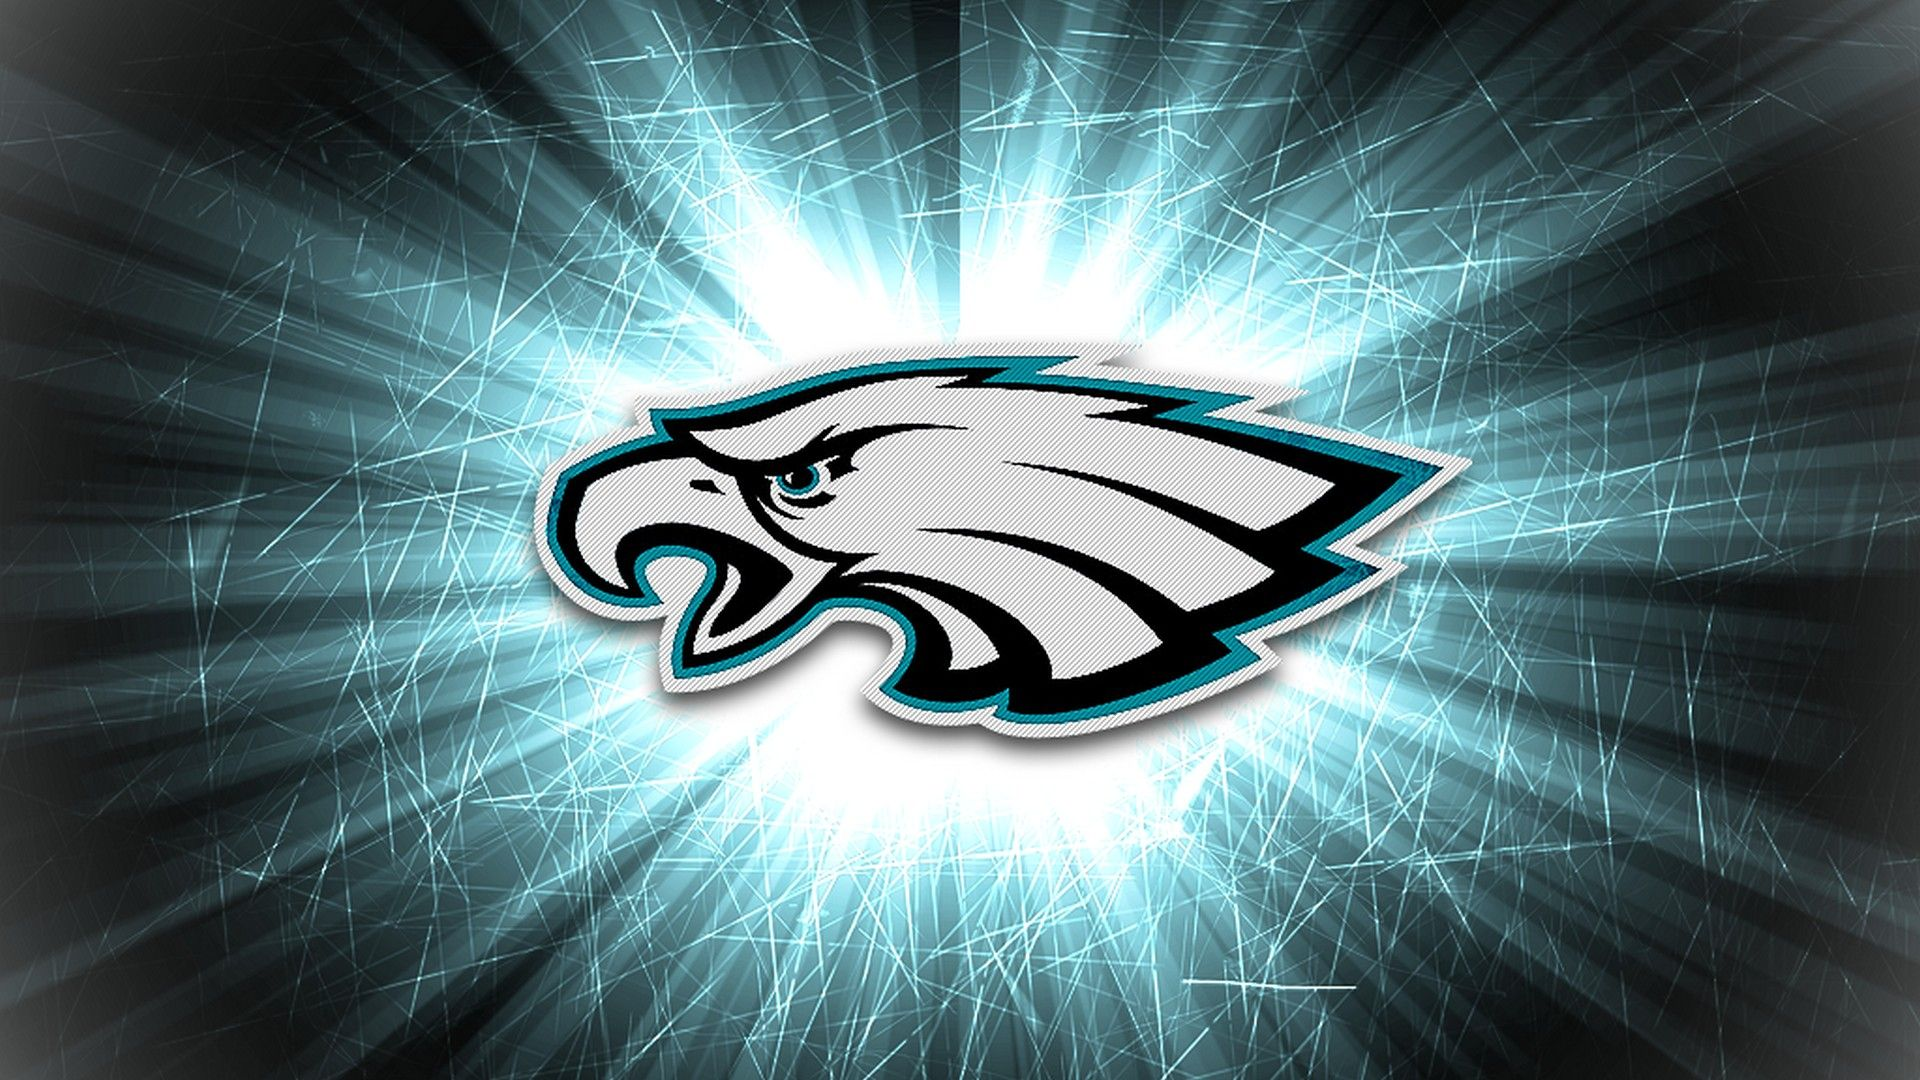 Nfl Wallpapers Nfl Football Wallpaper Football Wallpaper Eagles